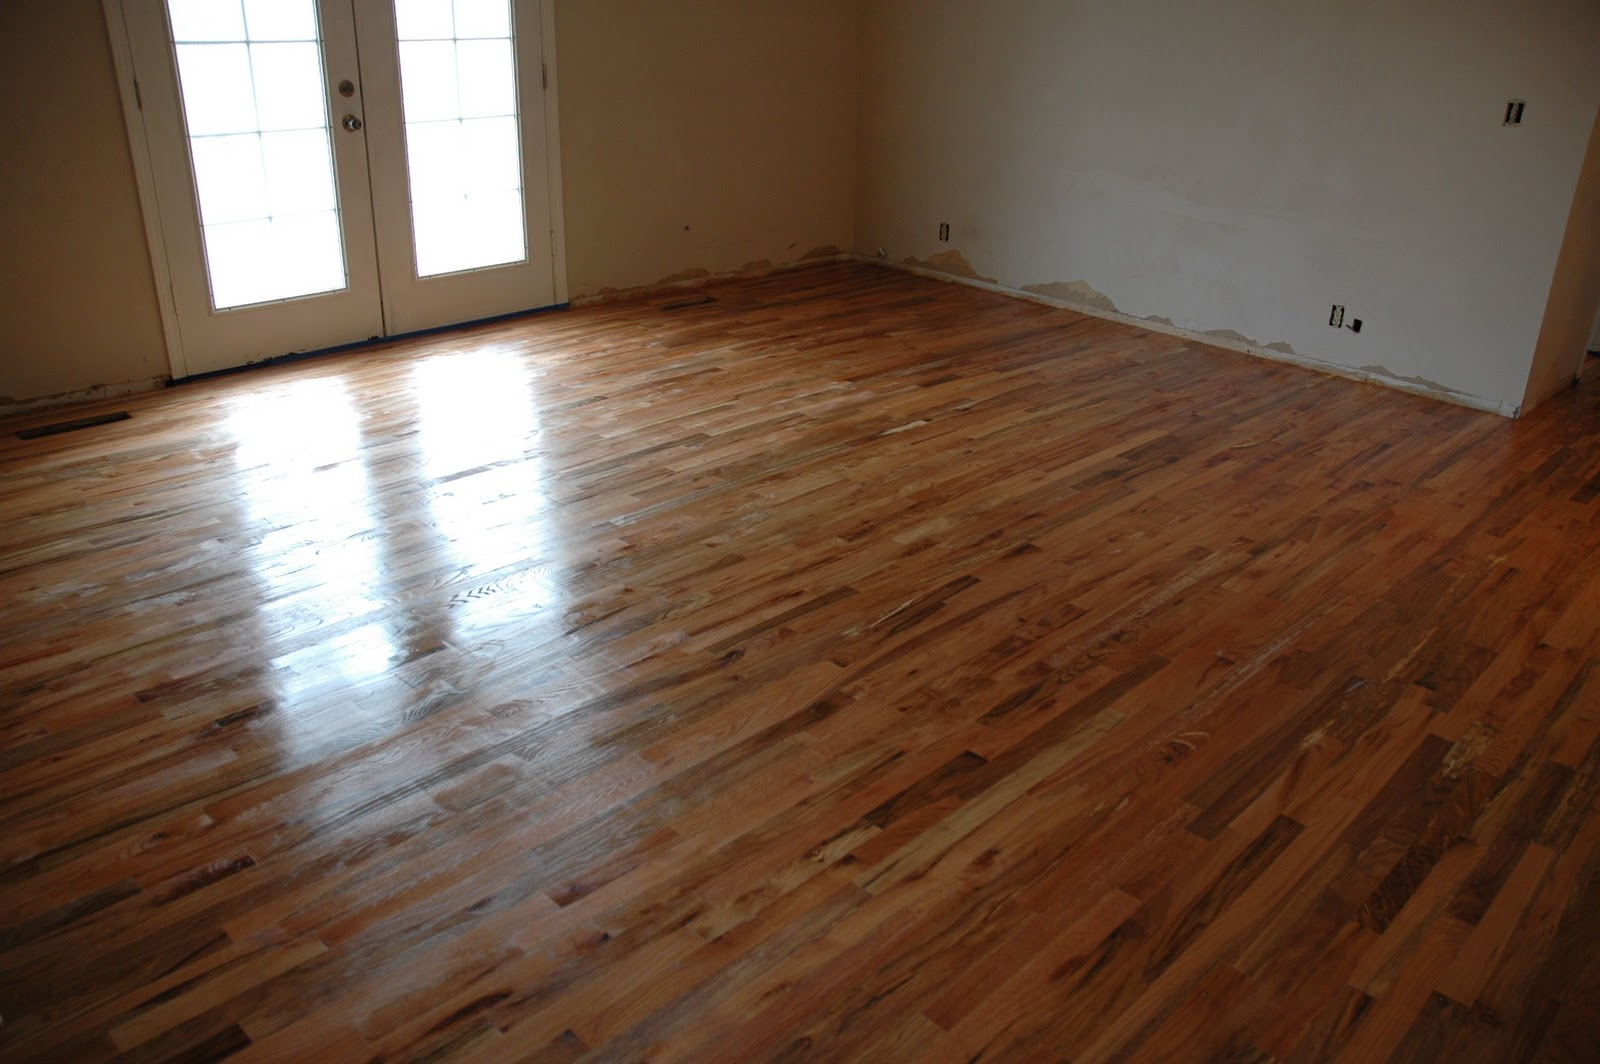 Remodelaholic how to finish solid wood flooring step by step there may be better ways to do this process but this is what i have found to work for me over the many years of laying and refinishing hardwood floors solutioingenieria Image collections